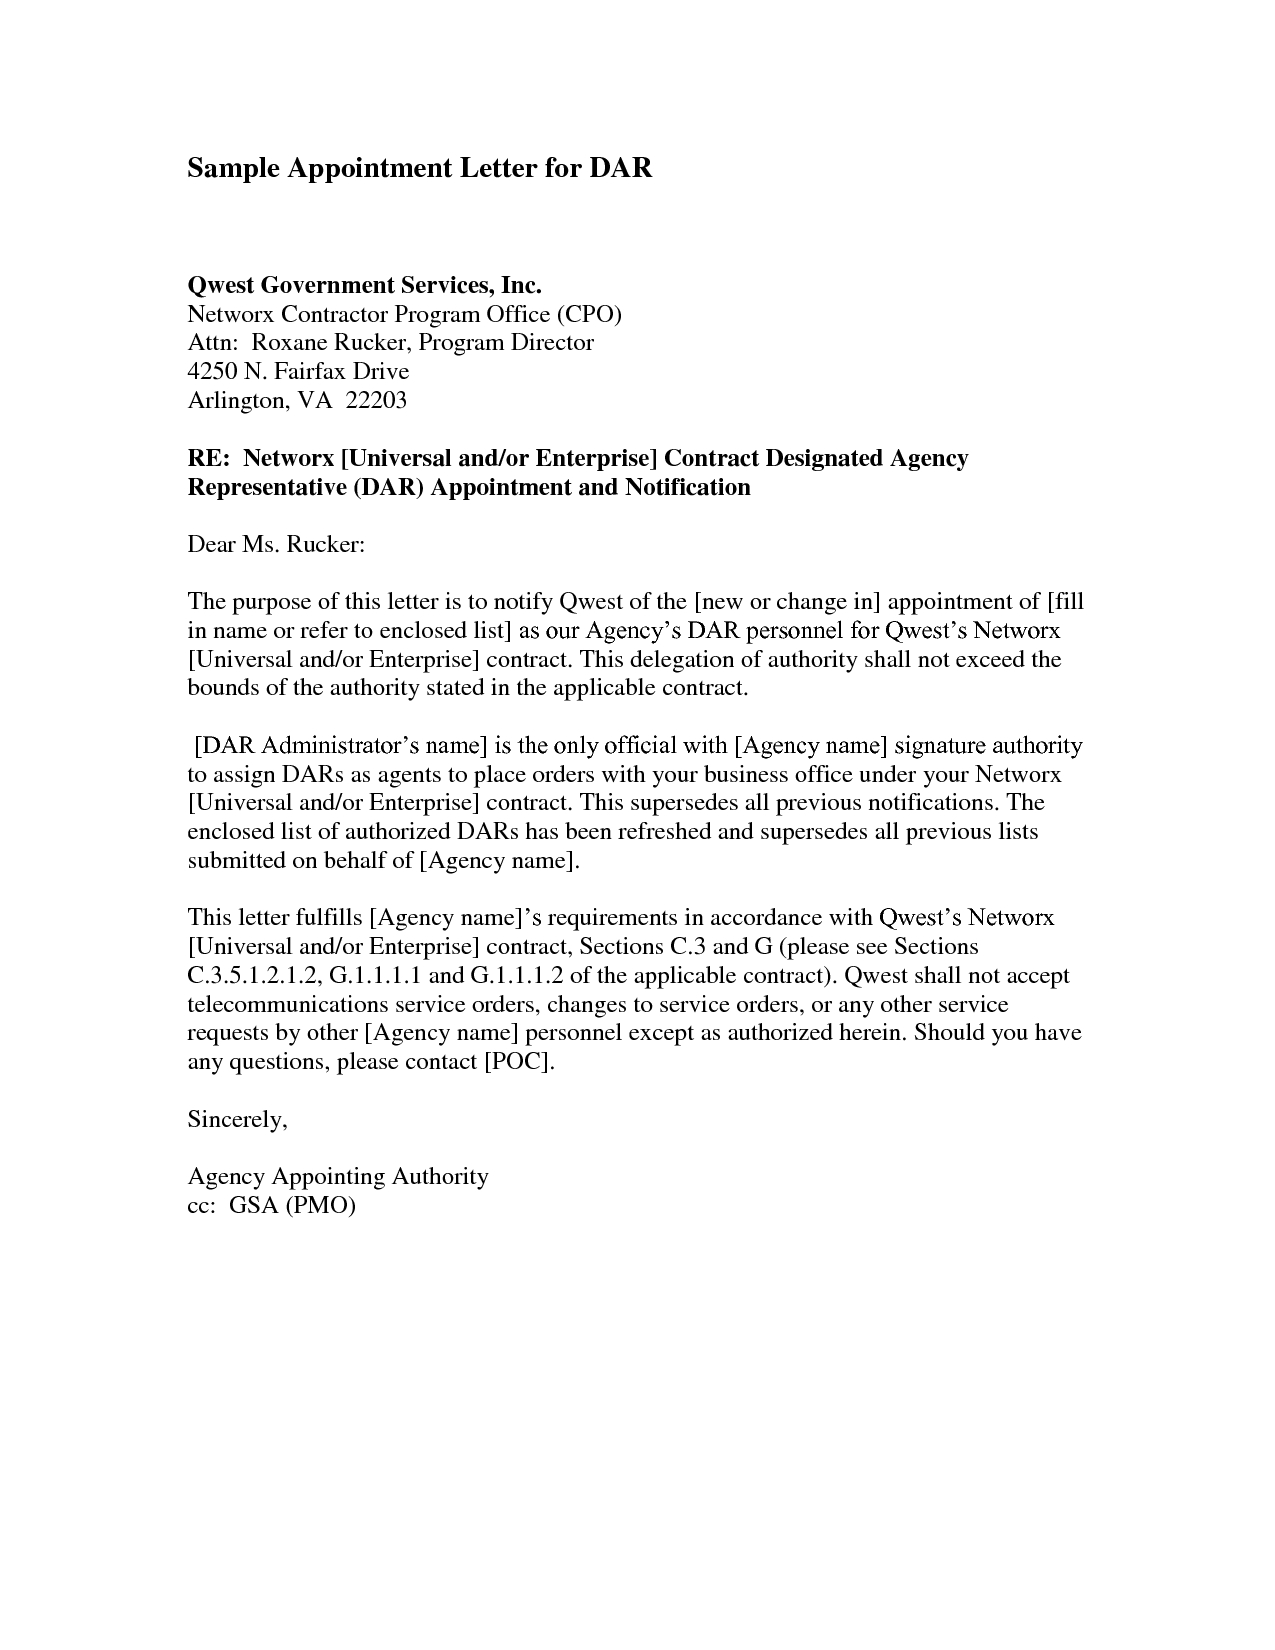 Audit Confirmation Letter Template - Trustee Appointment Letter Director Trustee is Appointed or